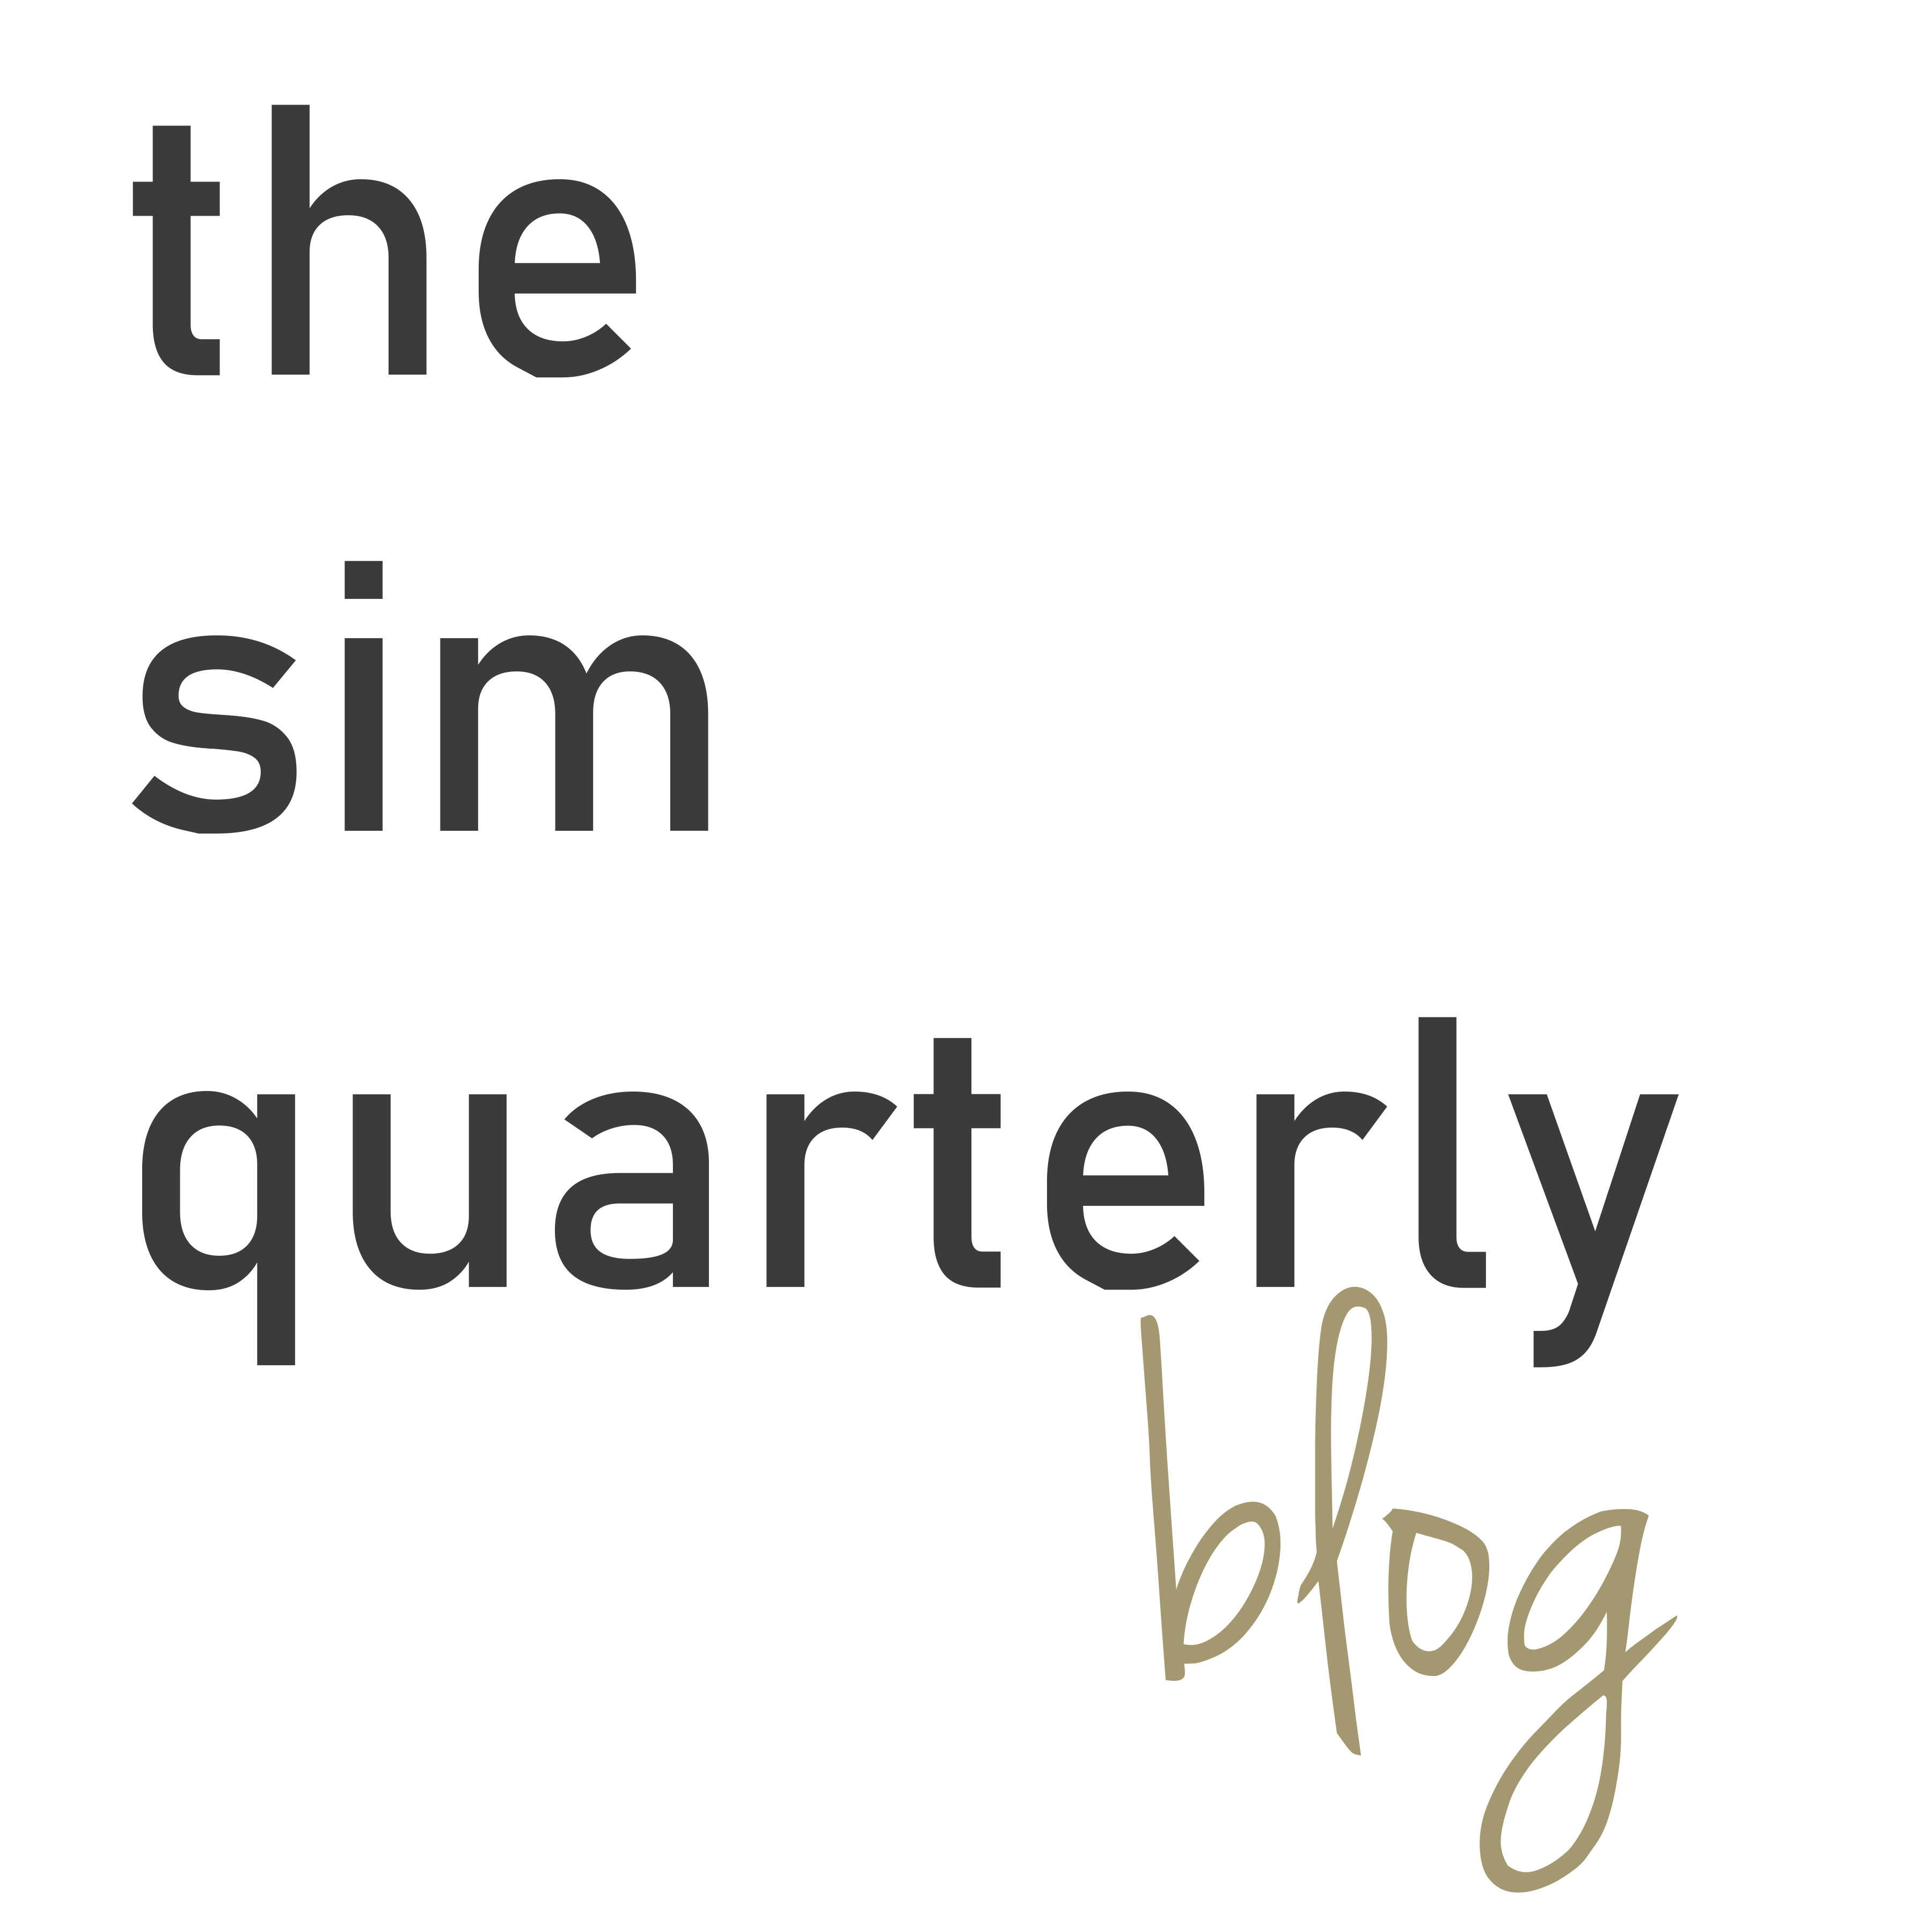 thesimquarterlyBlog